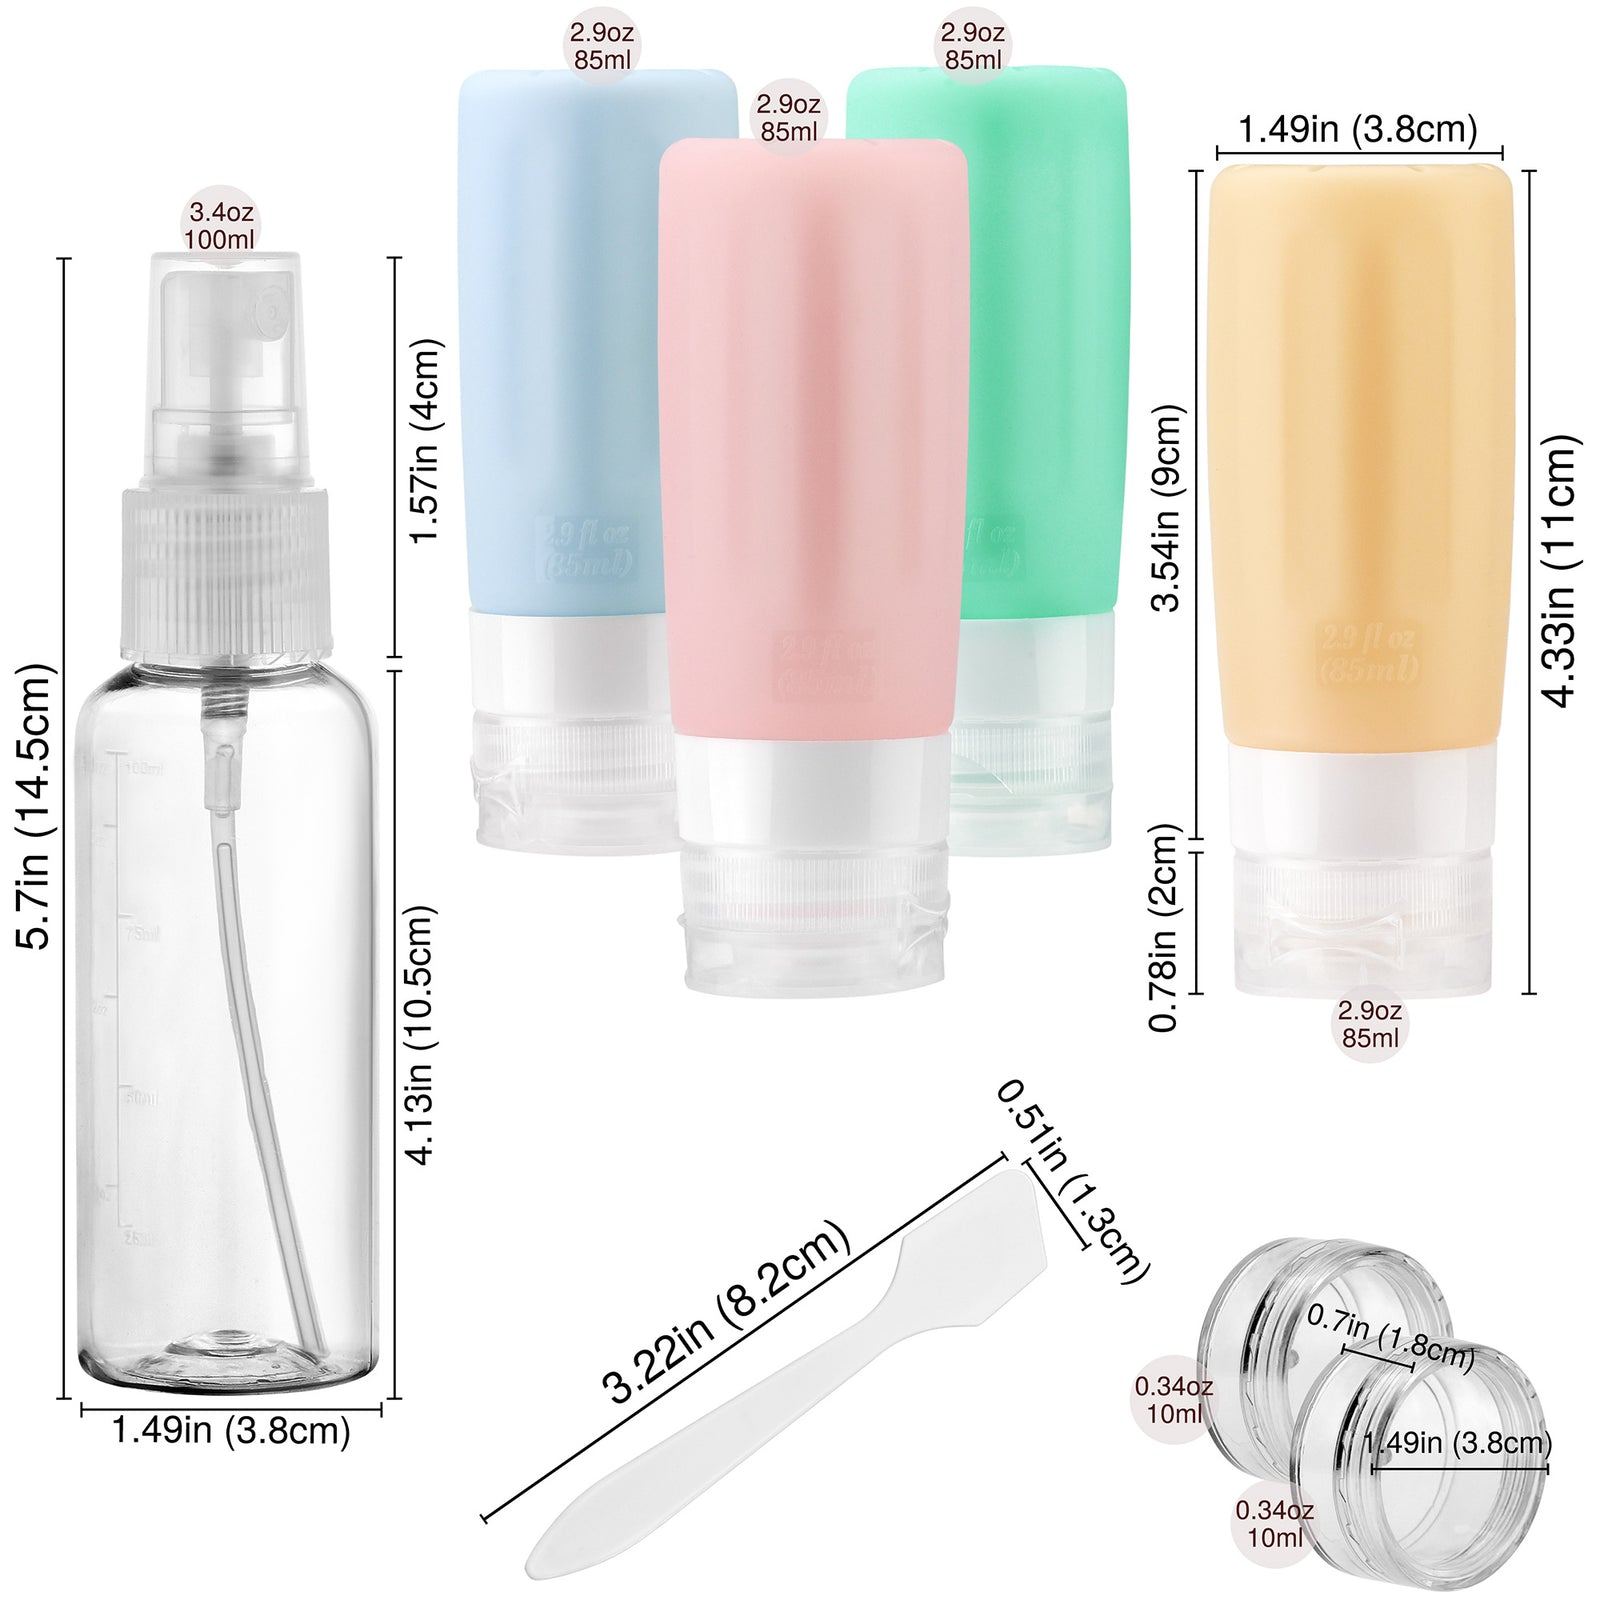 FiveSeasonStuff TSA Approved Silicone Leak Proof Travel Squeeze Bottles and Travel Spray Bottle with TSA Toiletry Bag (7 Pack) CheerfulSunny Pastel (Dusty Blue, Dusty Pink, Aqua Green & Apricot)